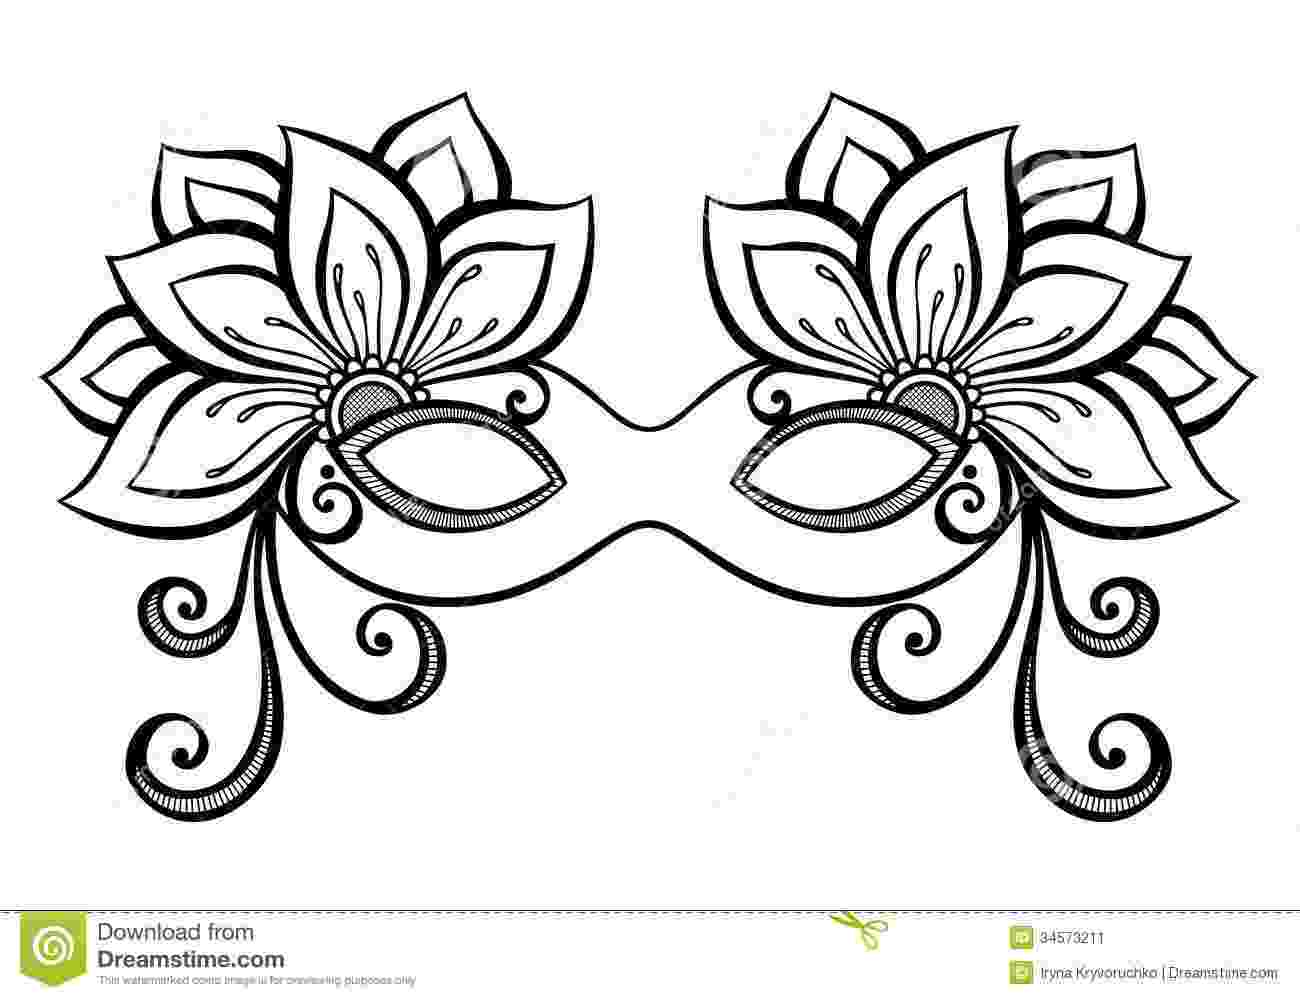 carnival mask coloring page venice mask coloring pages hellokidscom carnival mask coloring page